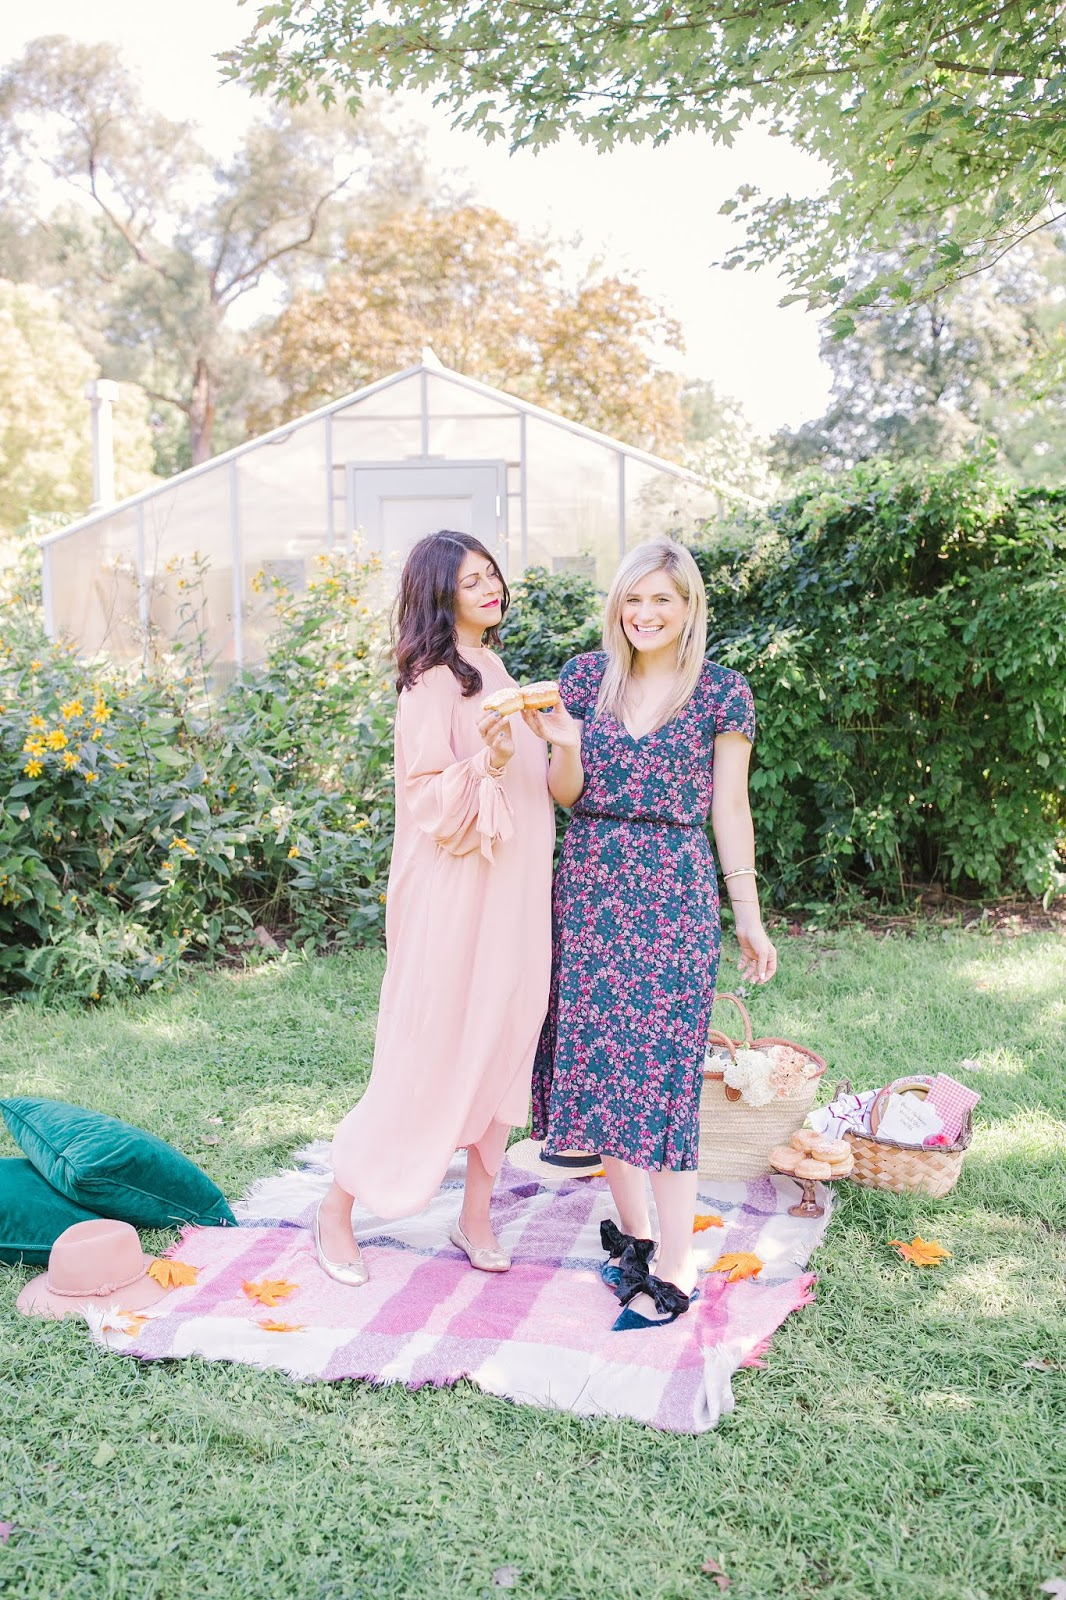 Bijuelni | How To Make New Friends as an Adult - Colourful fall pic nic